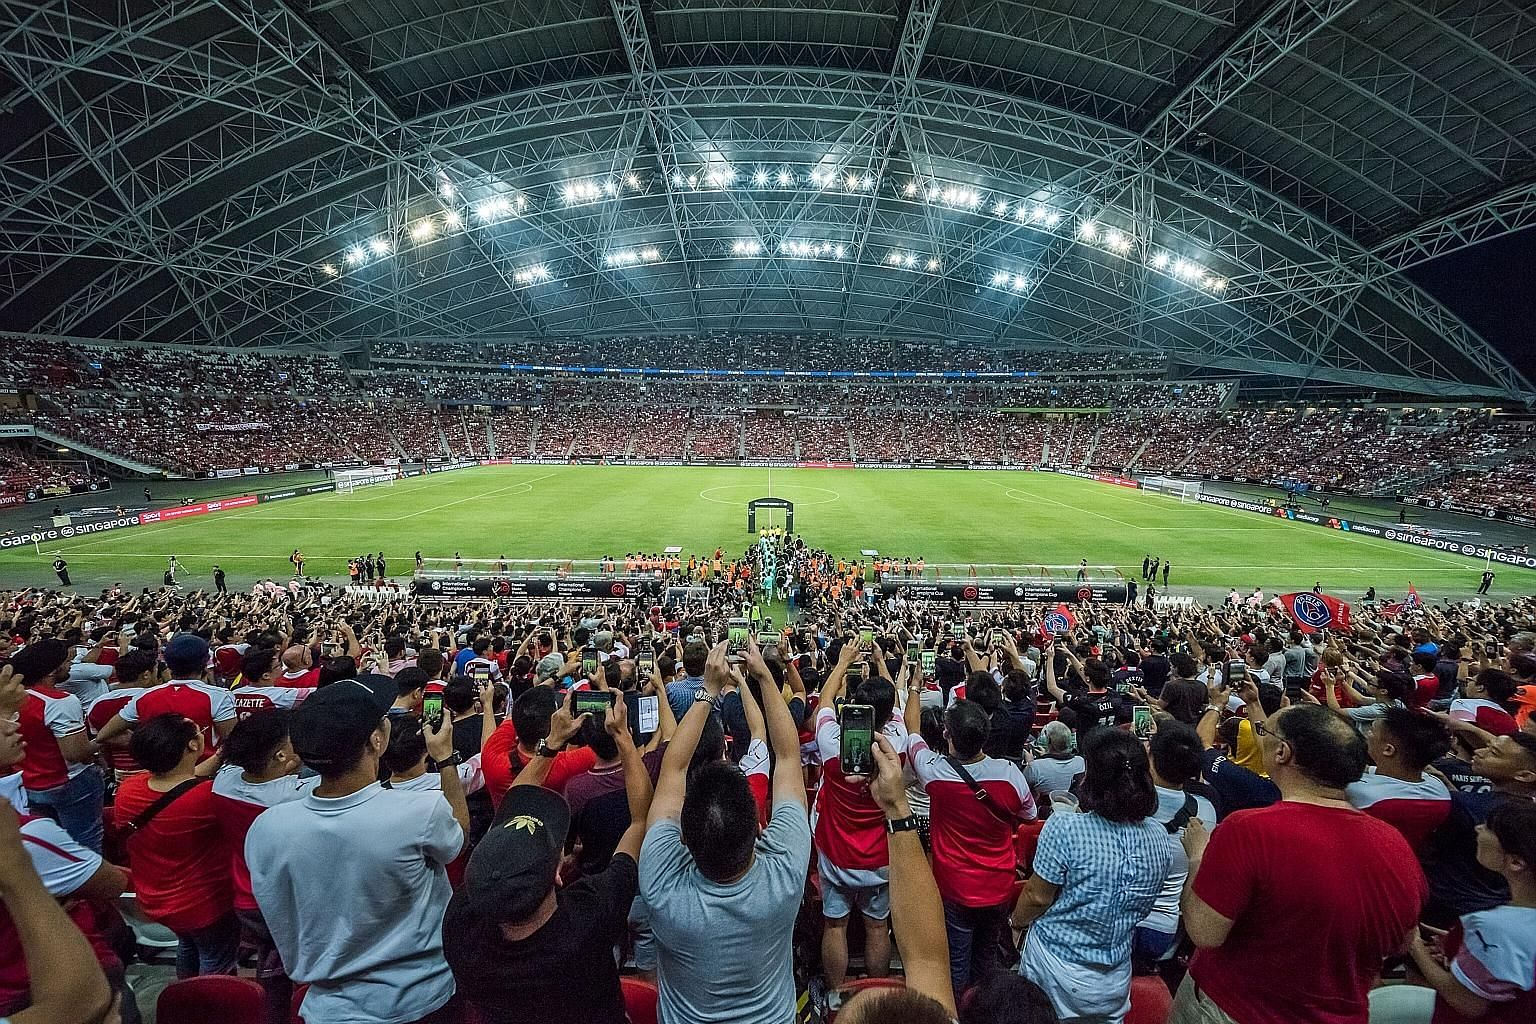 Fans going to the Sports Hub next weekend for the ICC football matches can also indulge in foosball challenges, penalty shoot-outs, virtual reality and e-sport gaming experiences at the OCBC Square.